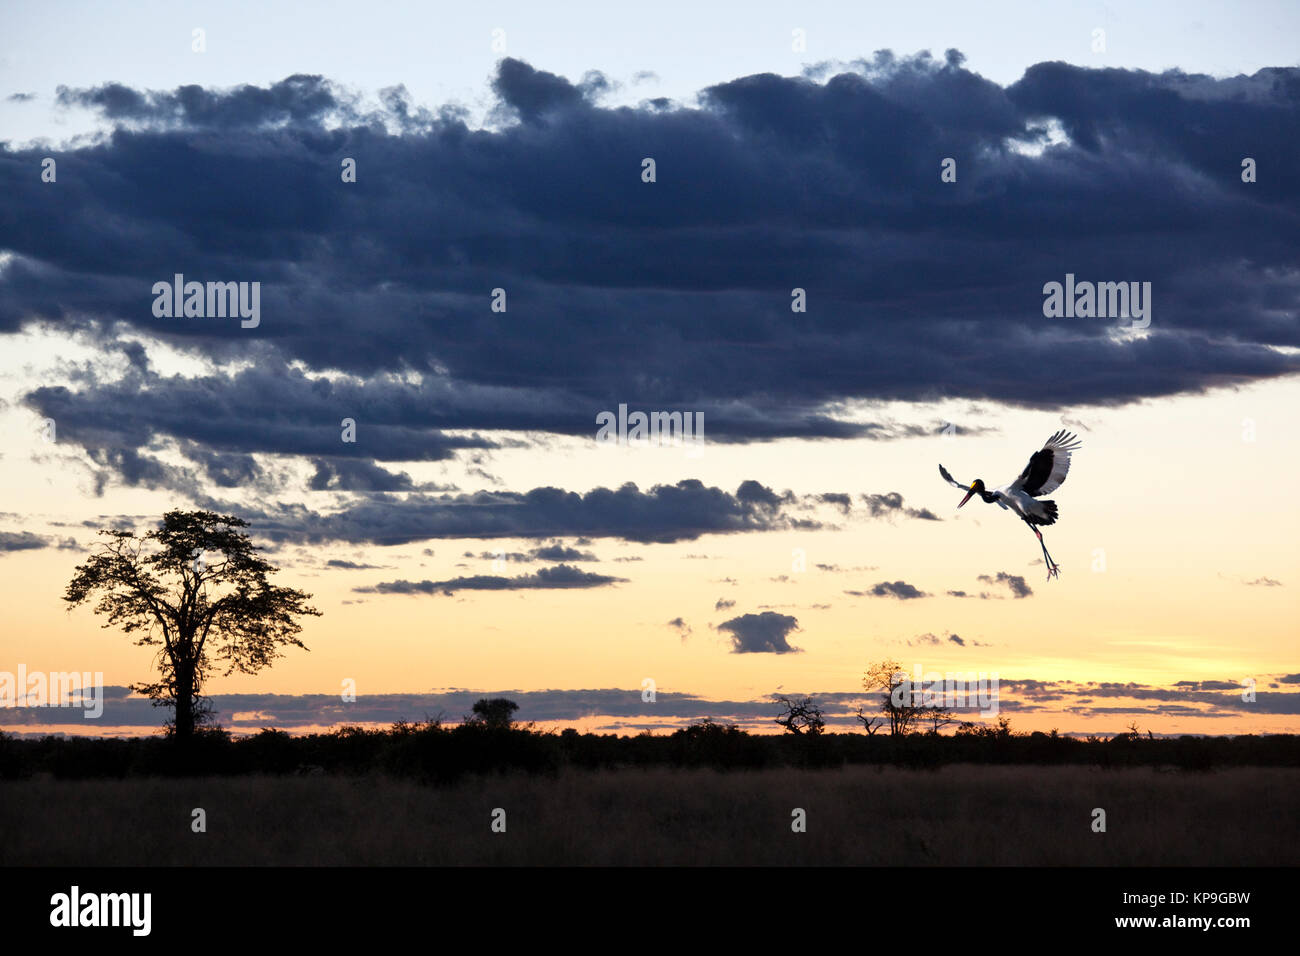 A Saddle-billed Stork (Ephippiorhynchus senegalansis) at dusk in the Savuti Region of Botswana - Stock Image